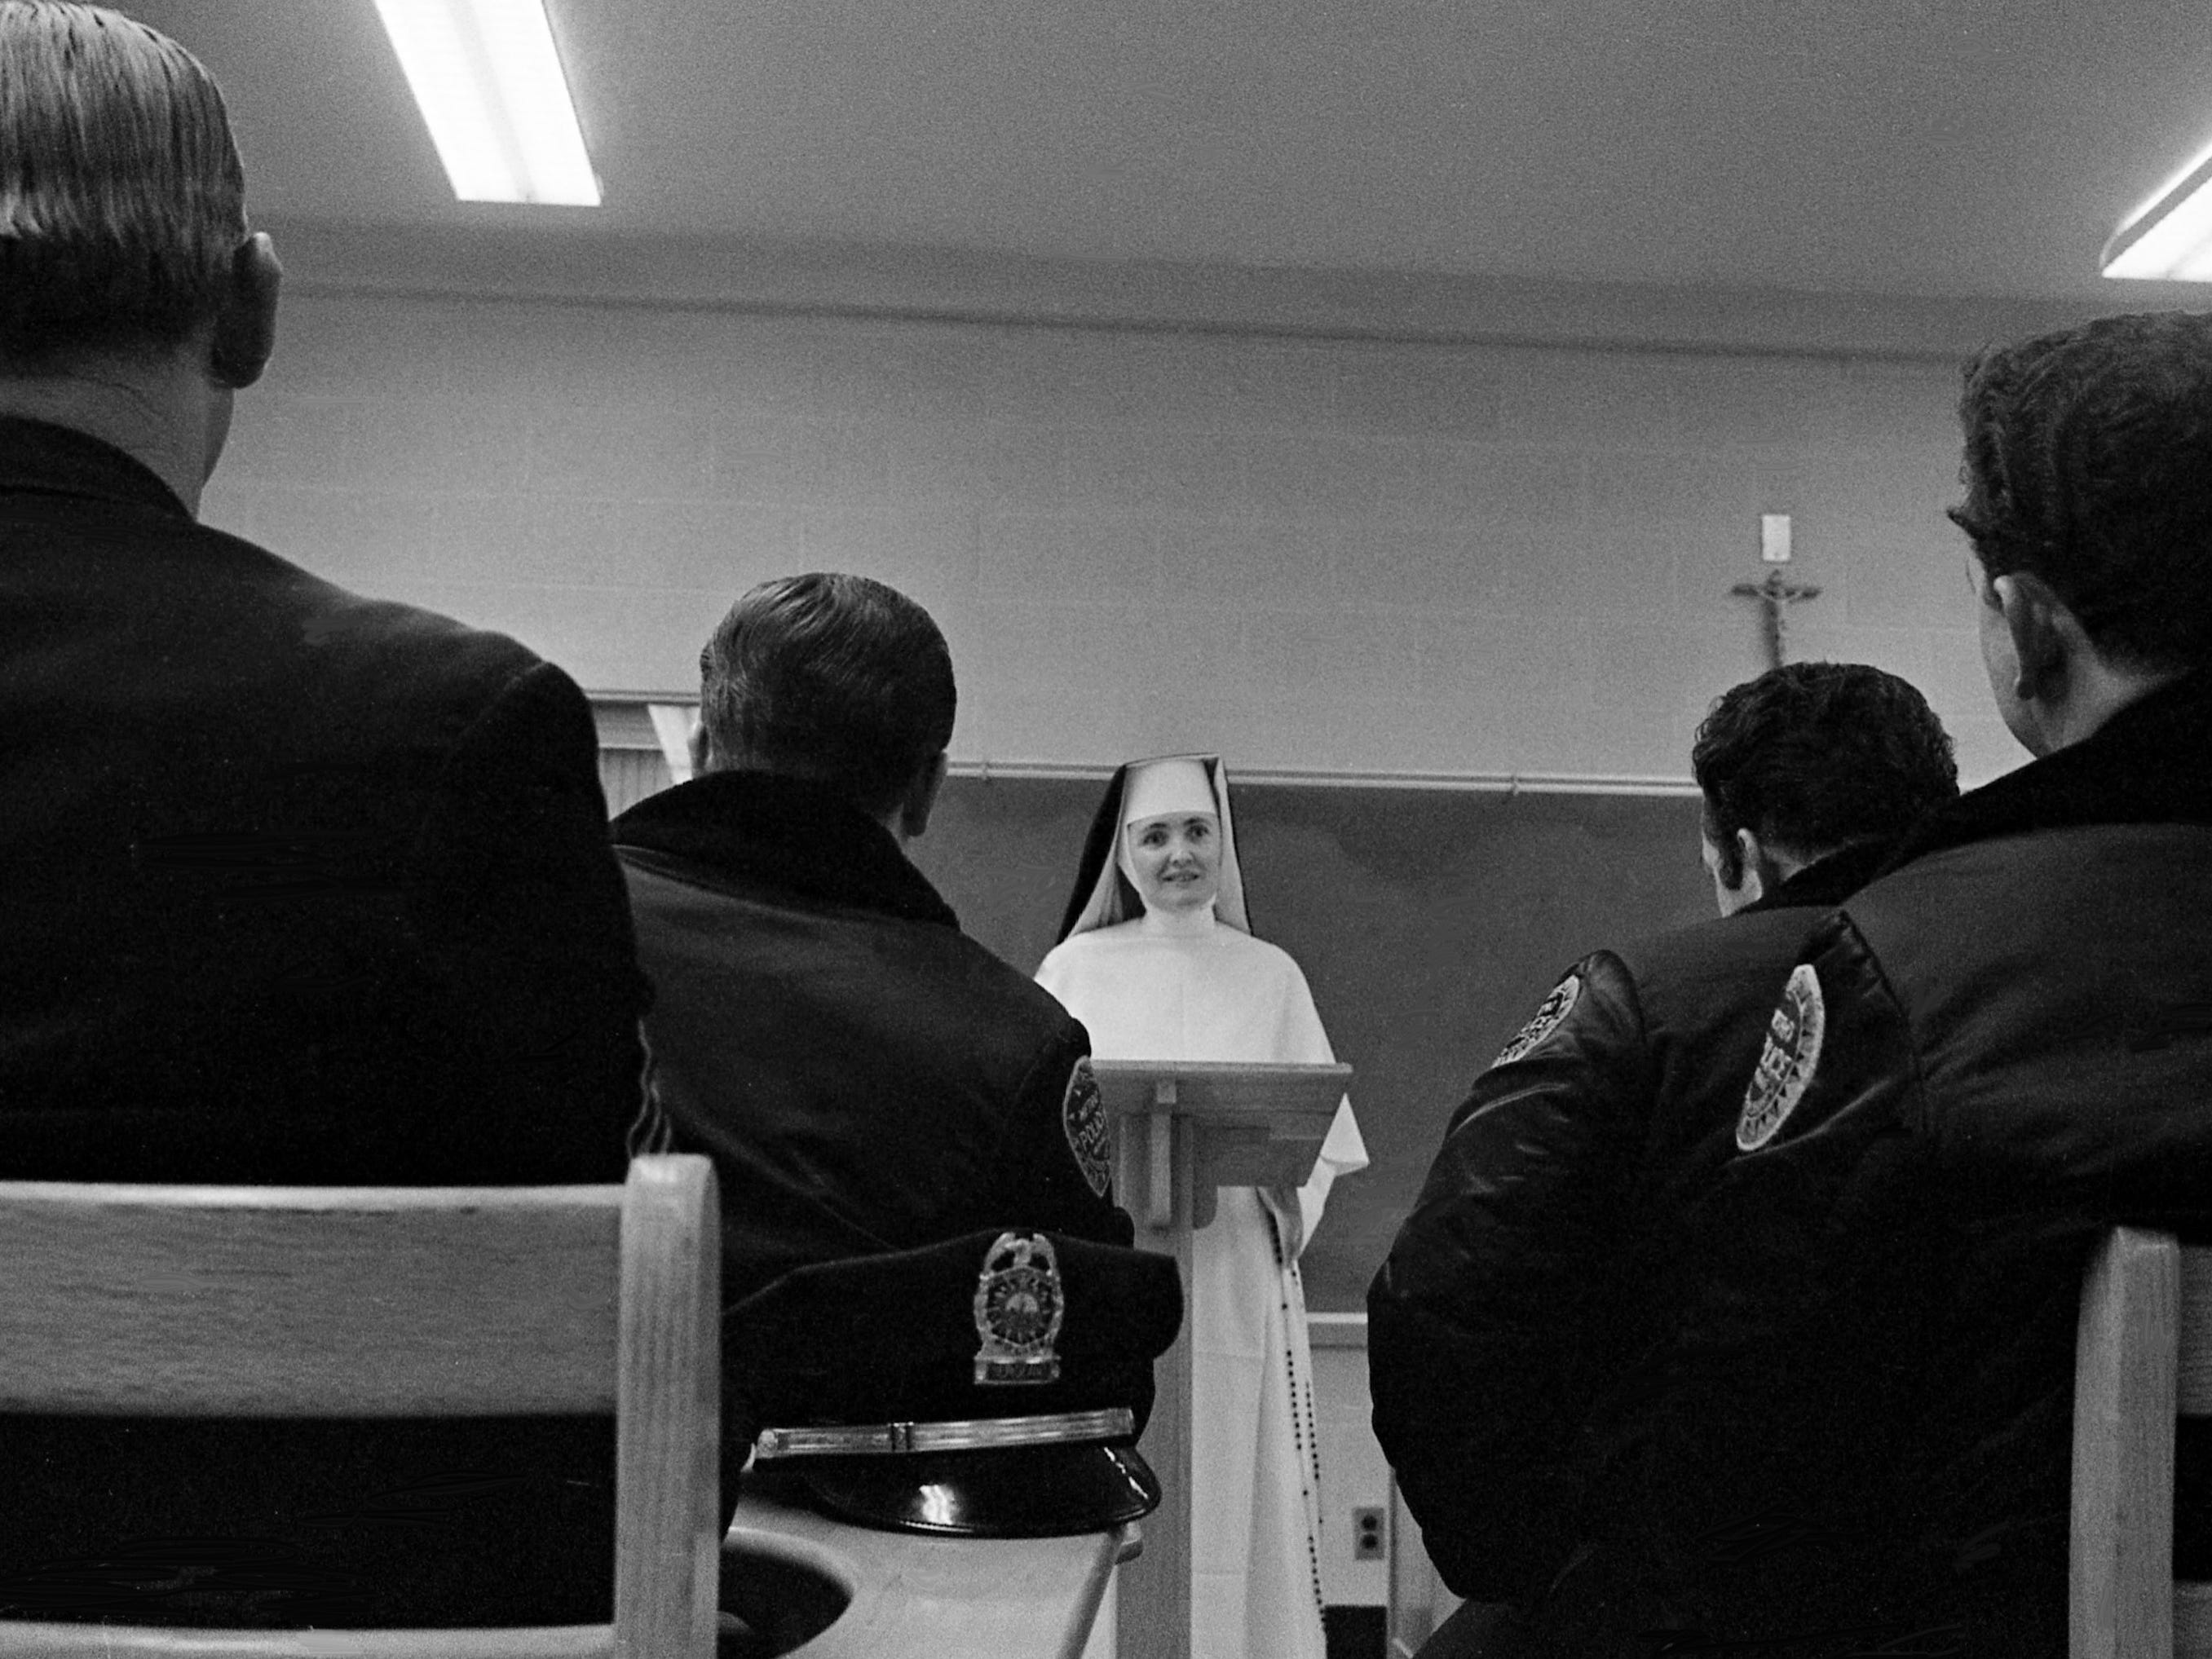 Sister Mary Bernard, center, an instructor at Aquinas Junior College, faces a classroom of Metro police officers taking part in a unique program Jan. 28, 1969. The college now offers an Associate of Arts degree to police officers completing the requirements, including at least 20 semester hours of police science courses.